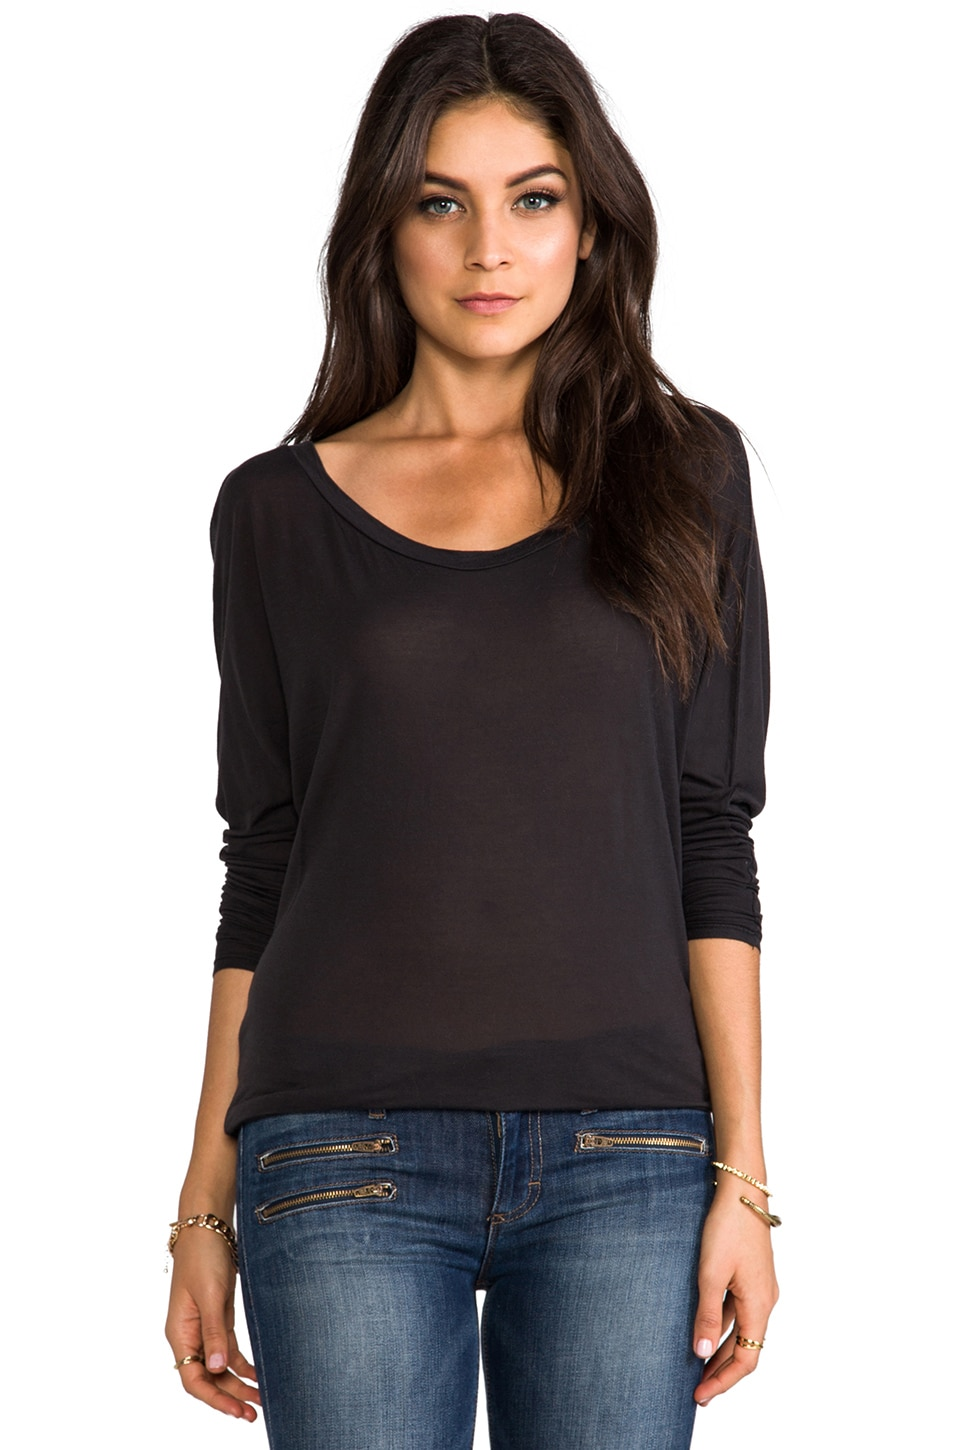 291 Scoop Dolman in Vintage Black